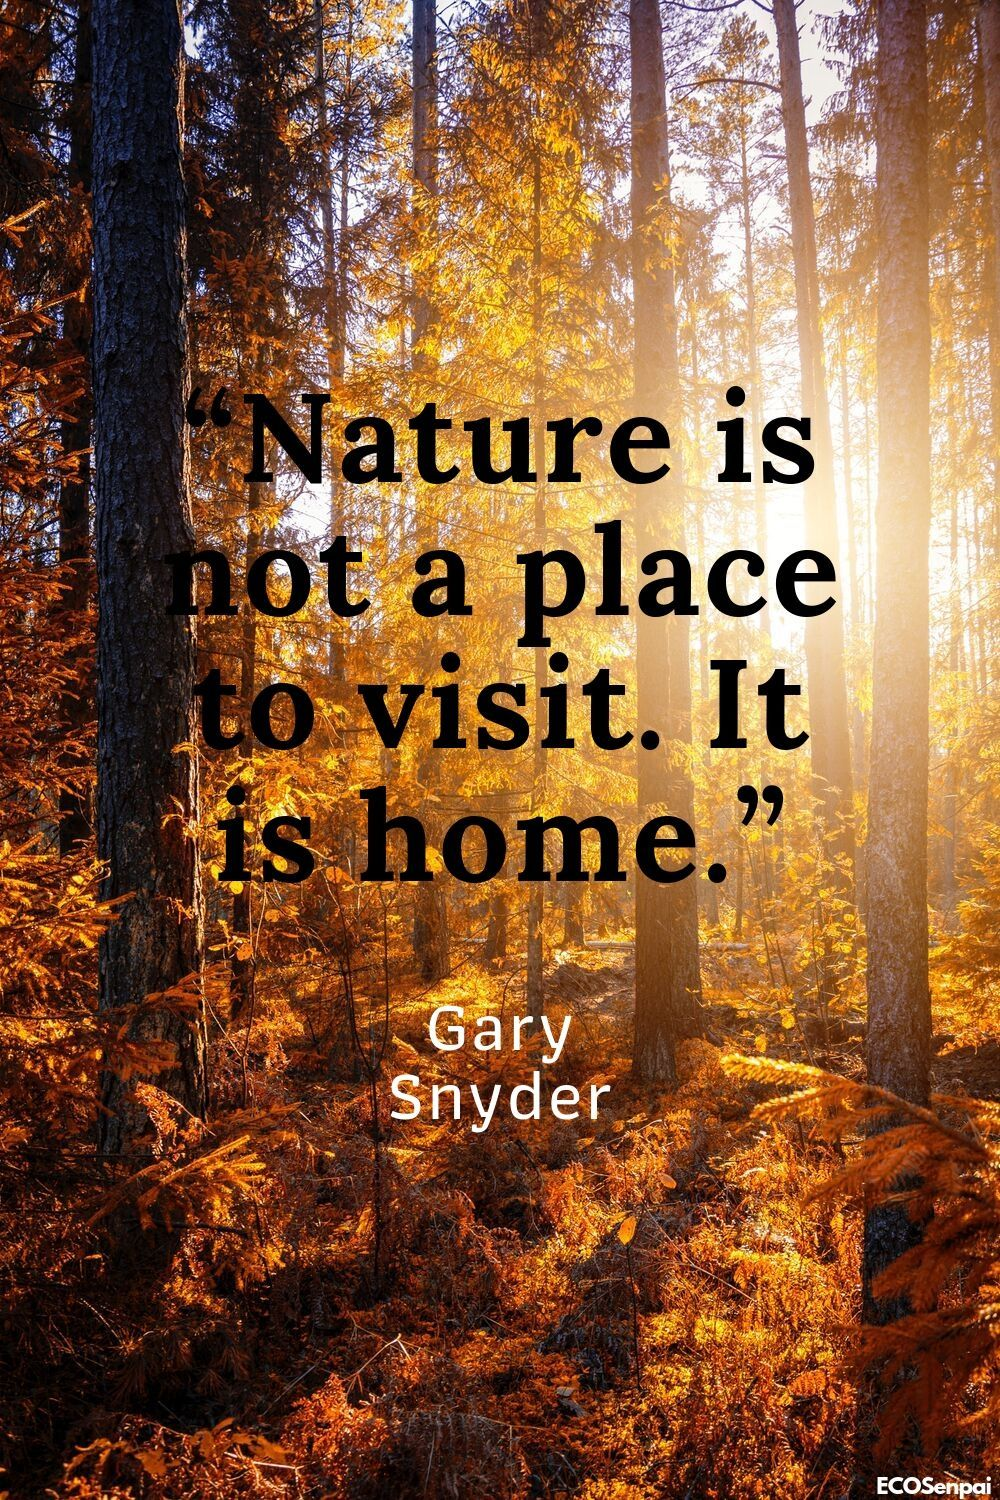 Environment Quotes About How Nature Is Important To Us And Is Our Second Home So Let S Care For Her Environment Quotes Environment Day Quotes Nature Quotes